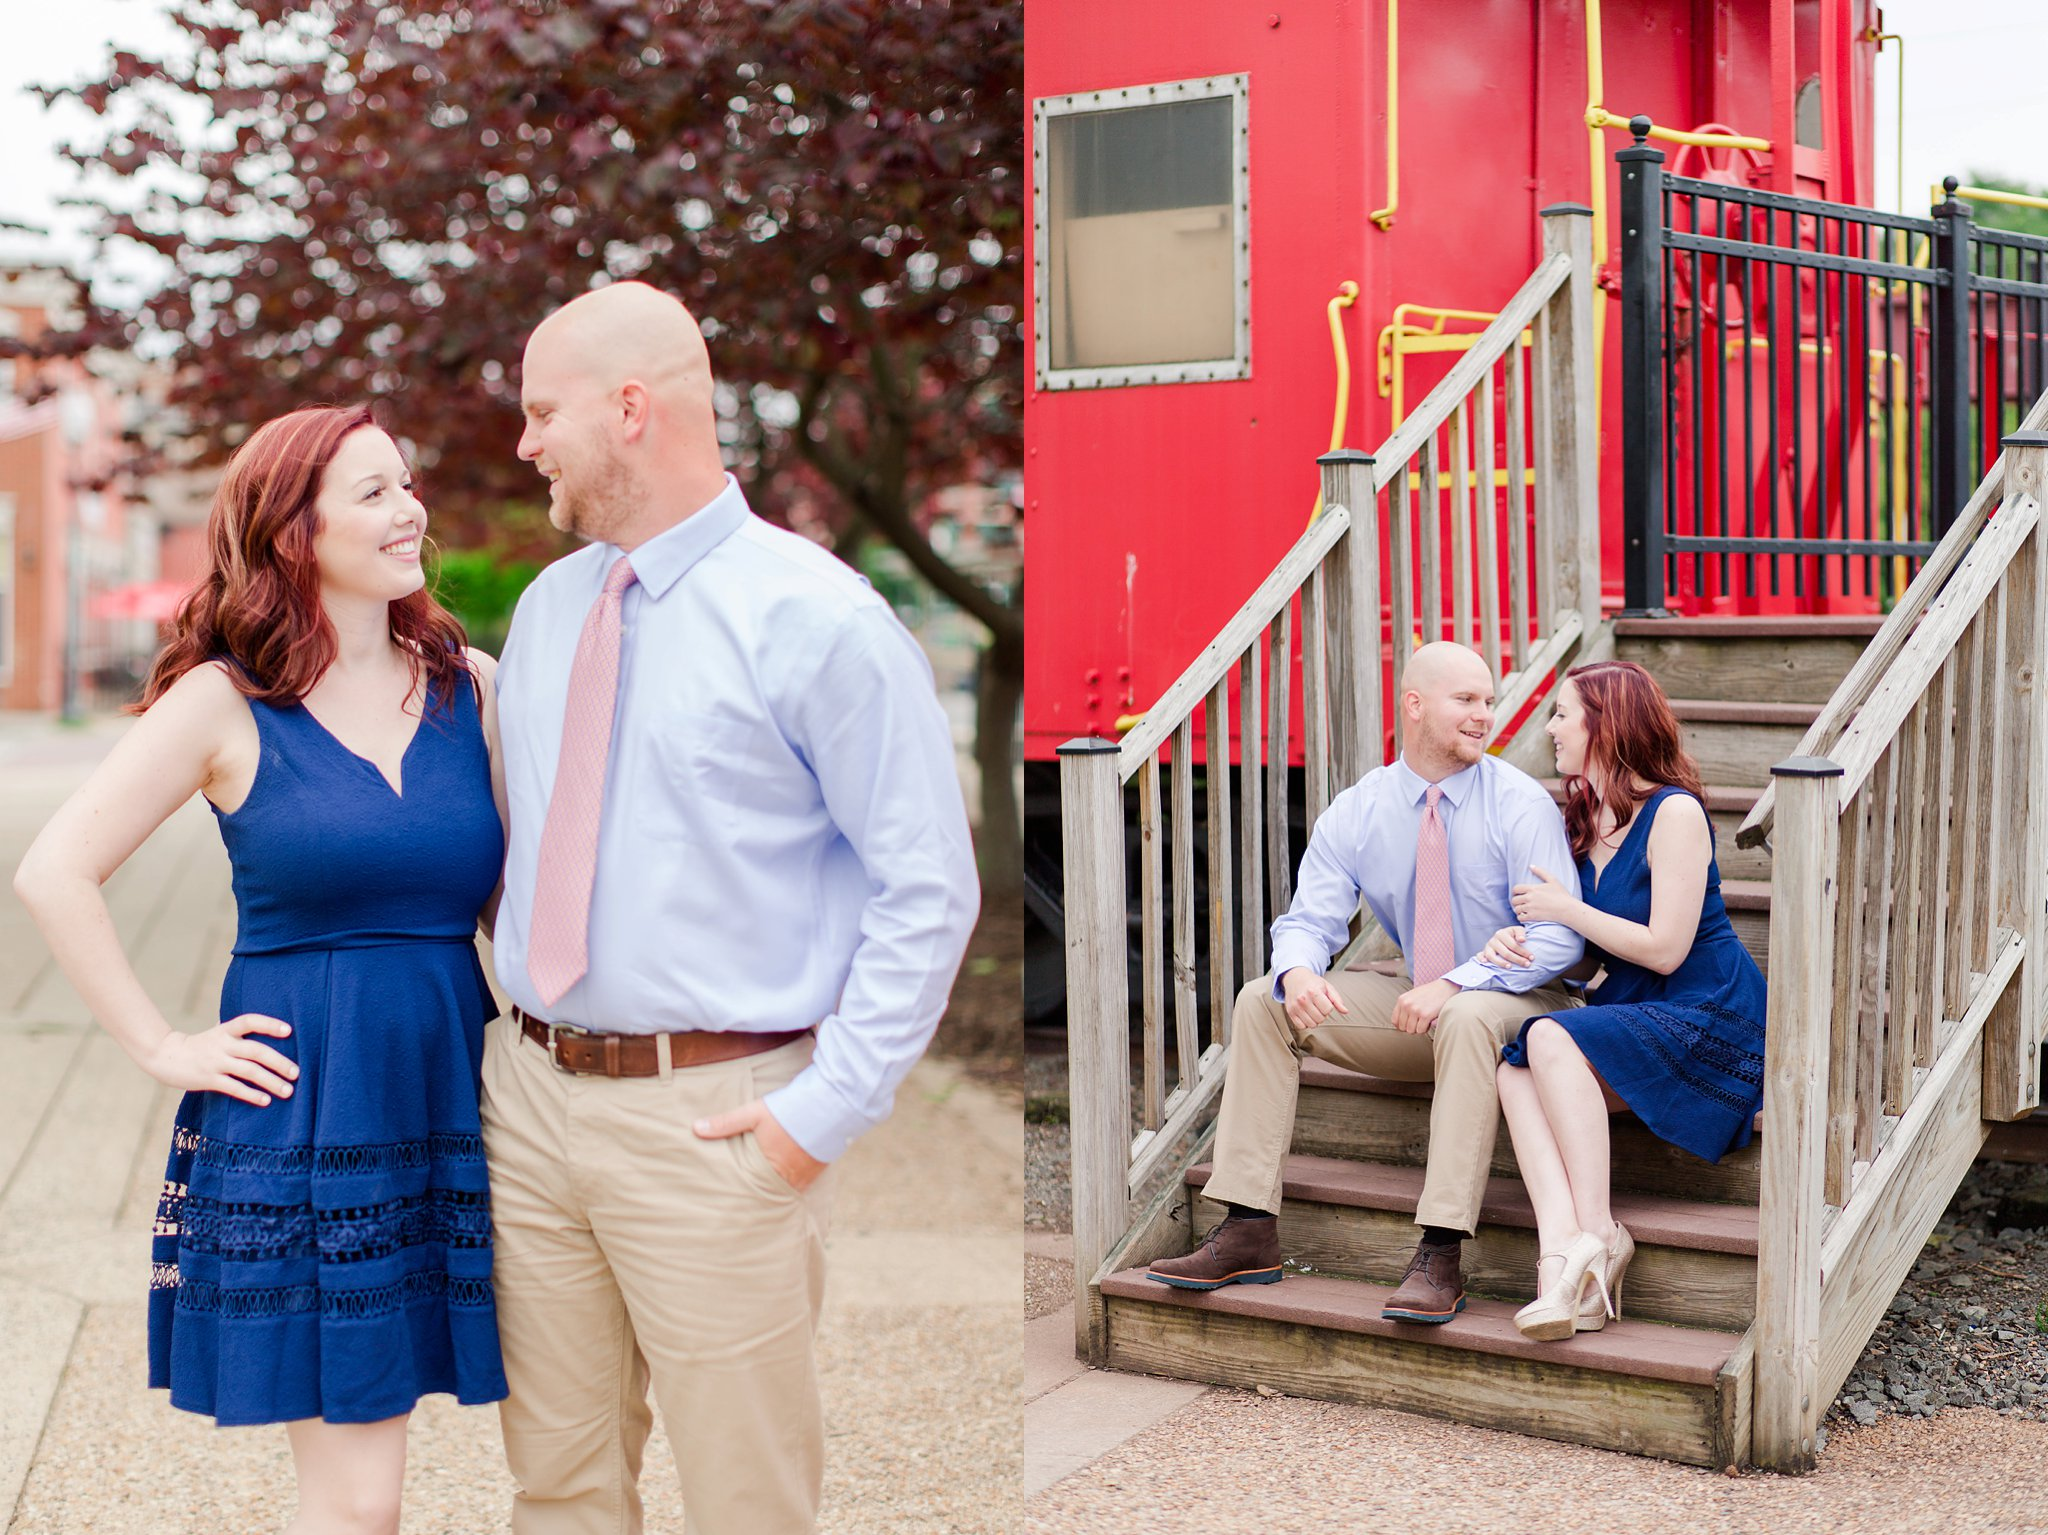 Old Town Manassas Battlefield Engagement Photos Virginia Wedding Photographer Jessica & Jason-3.jpg